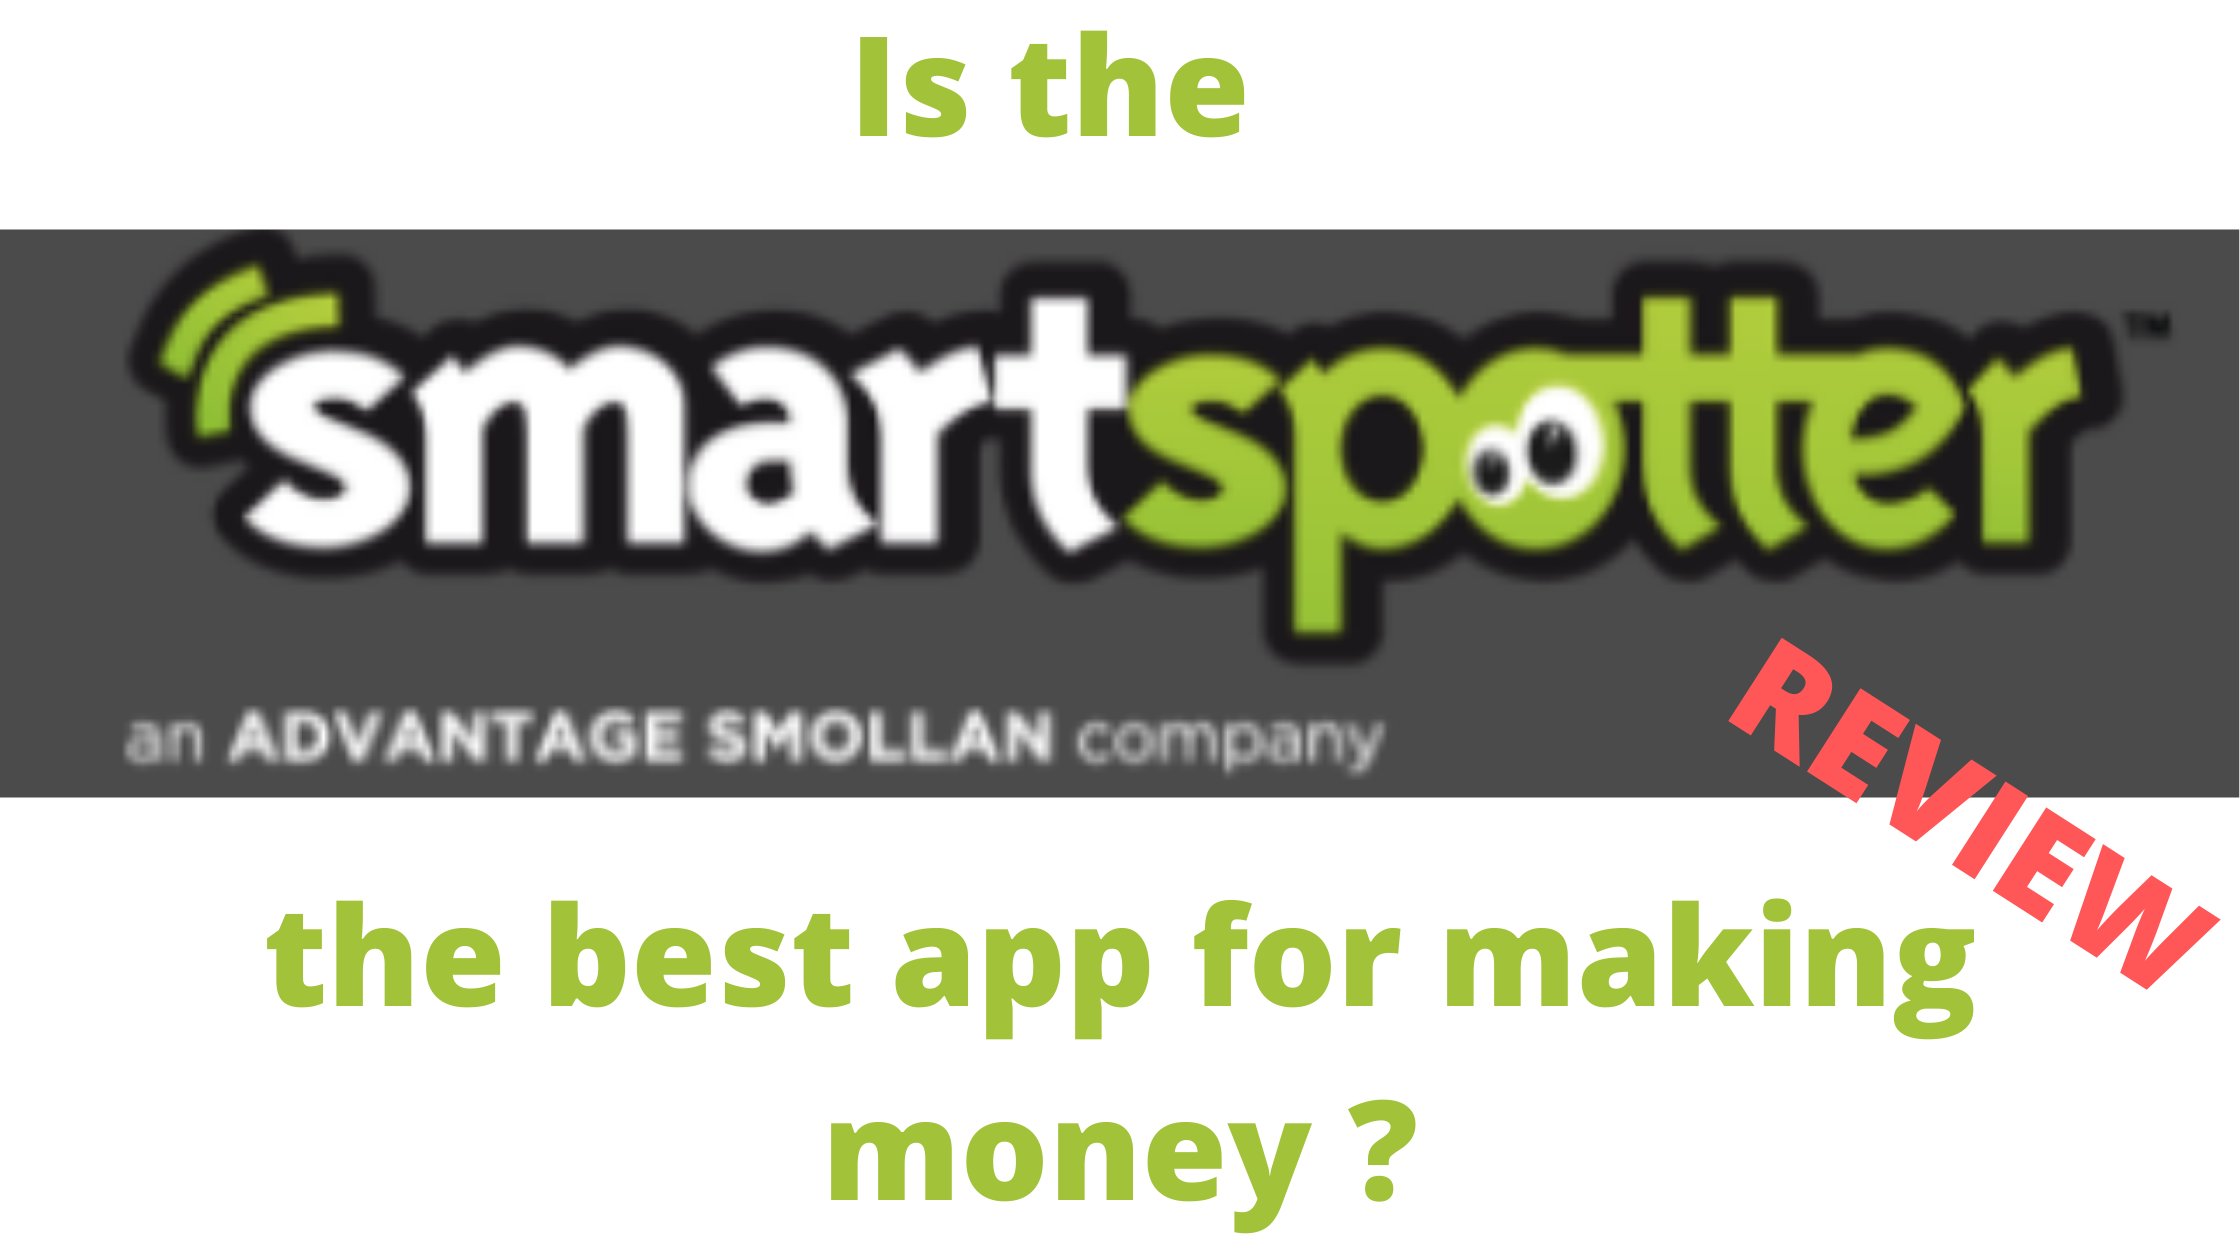 Is Smart Spotter The Best App For Making Money?